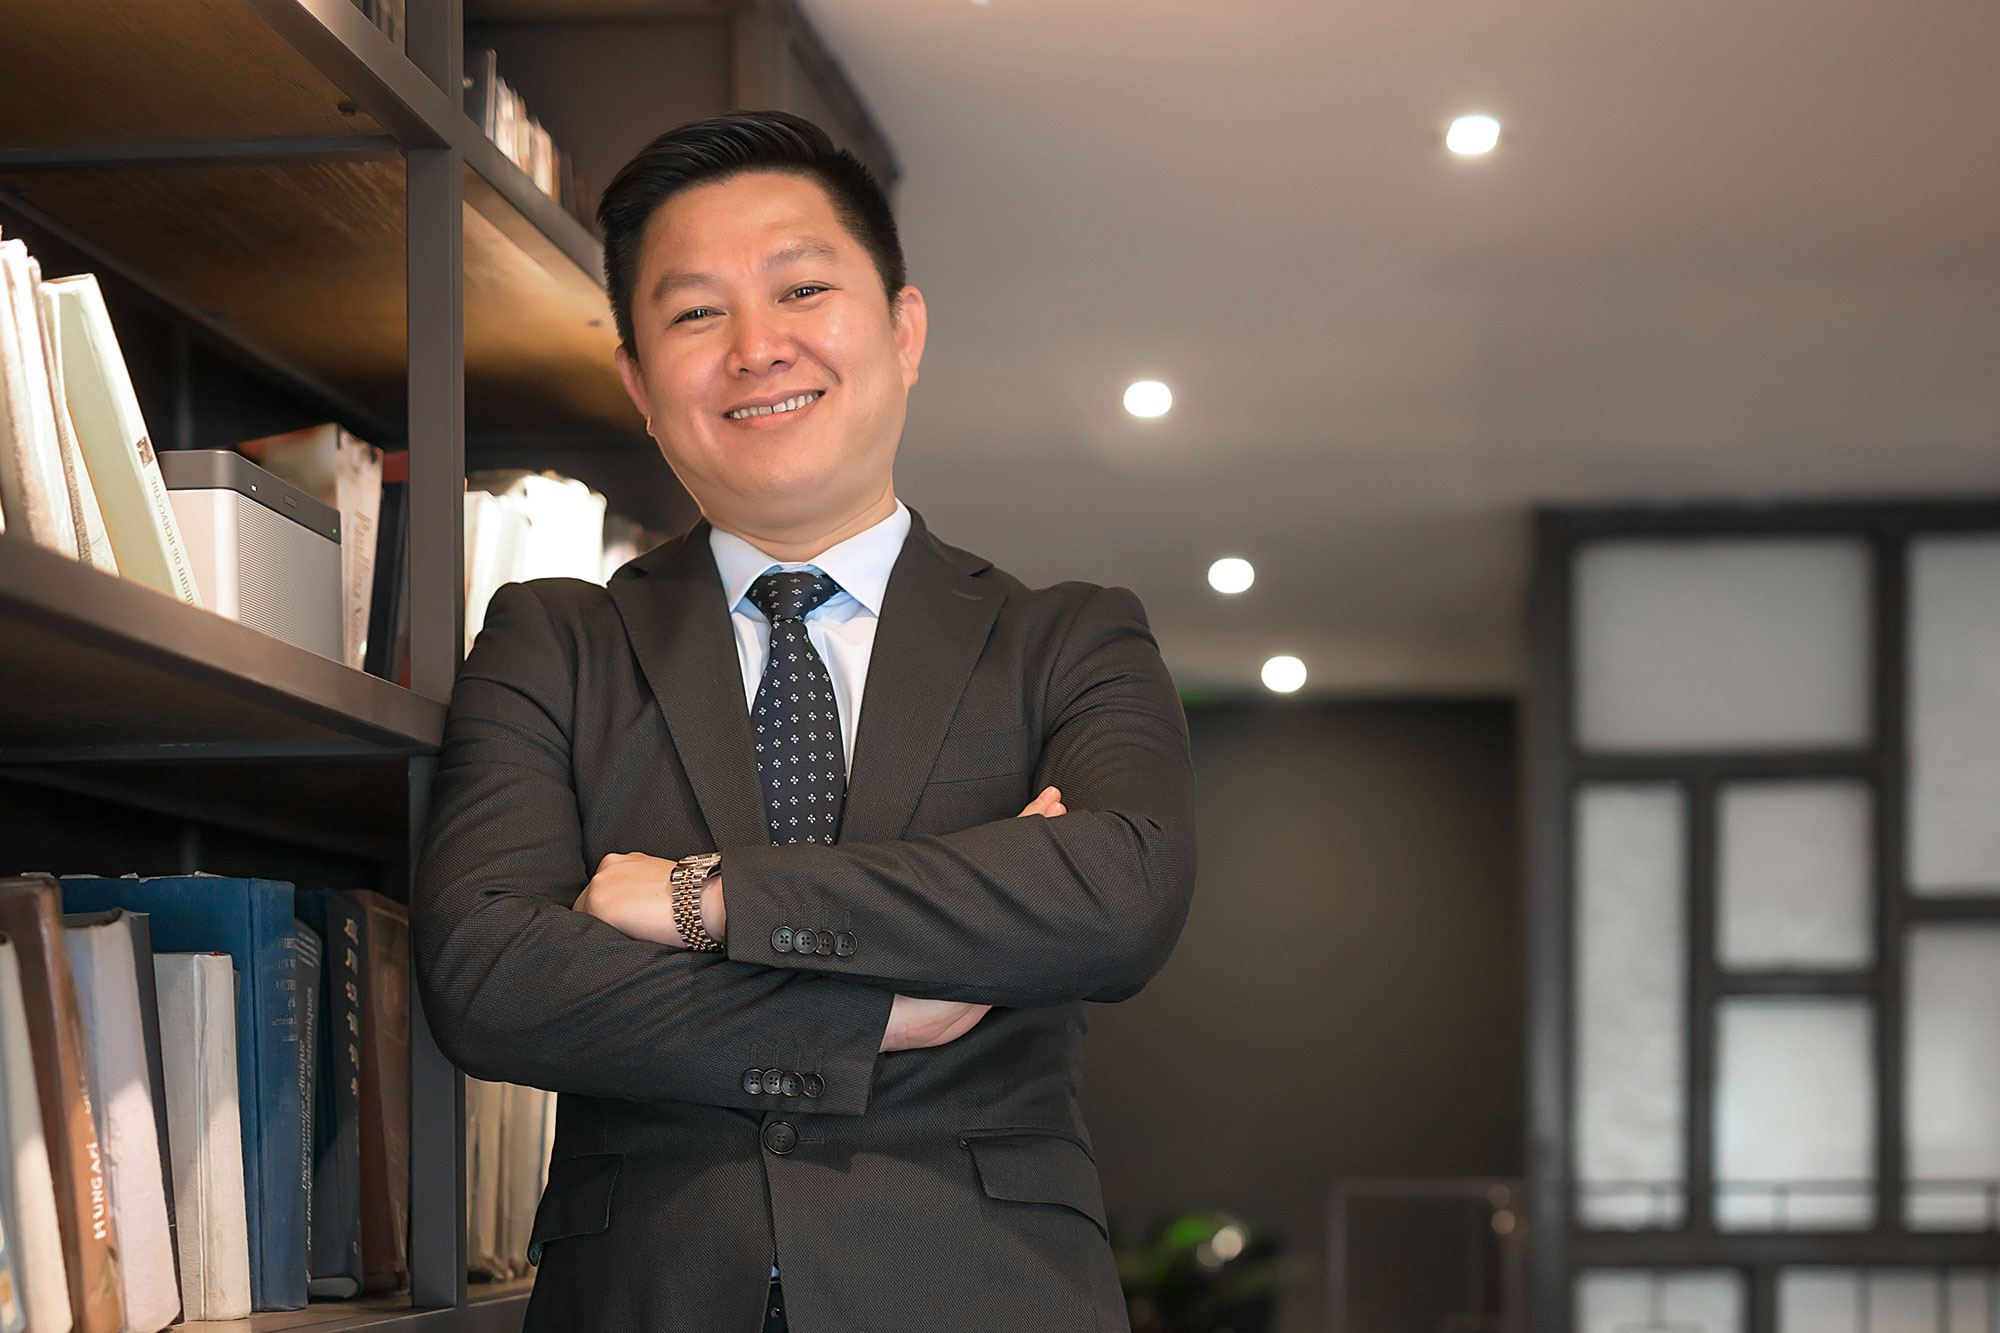 Elegance Hospitality: Why This Leader Believes Tourism In Vietnam Is Just Starting - Vietcetera